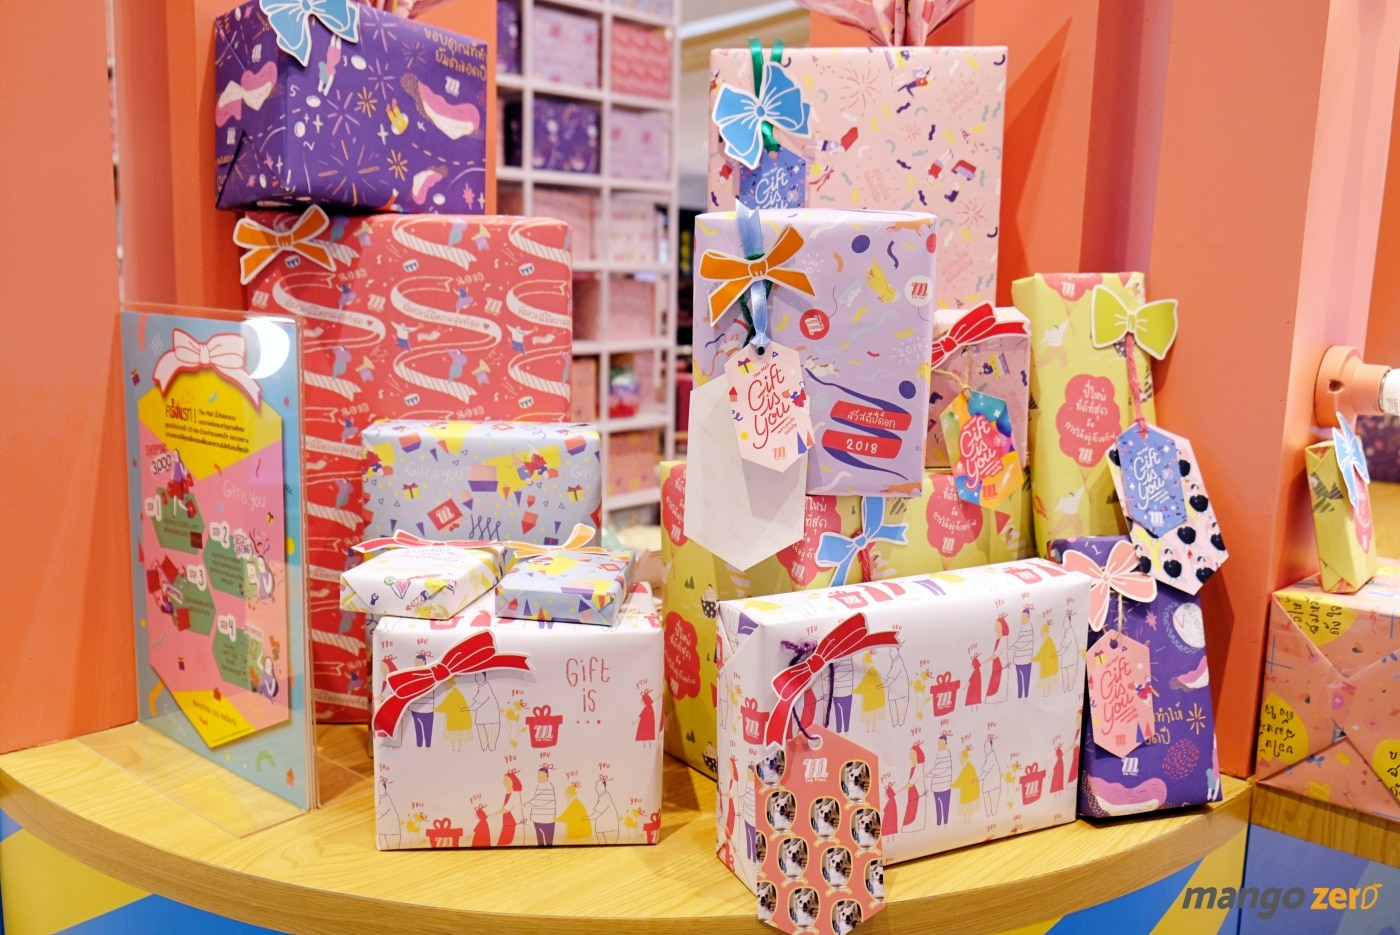 gift-wrapping-paragon-emporium-the-mall-11